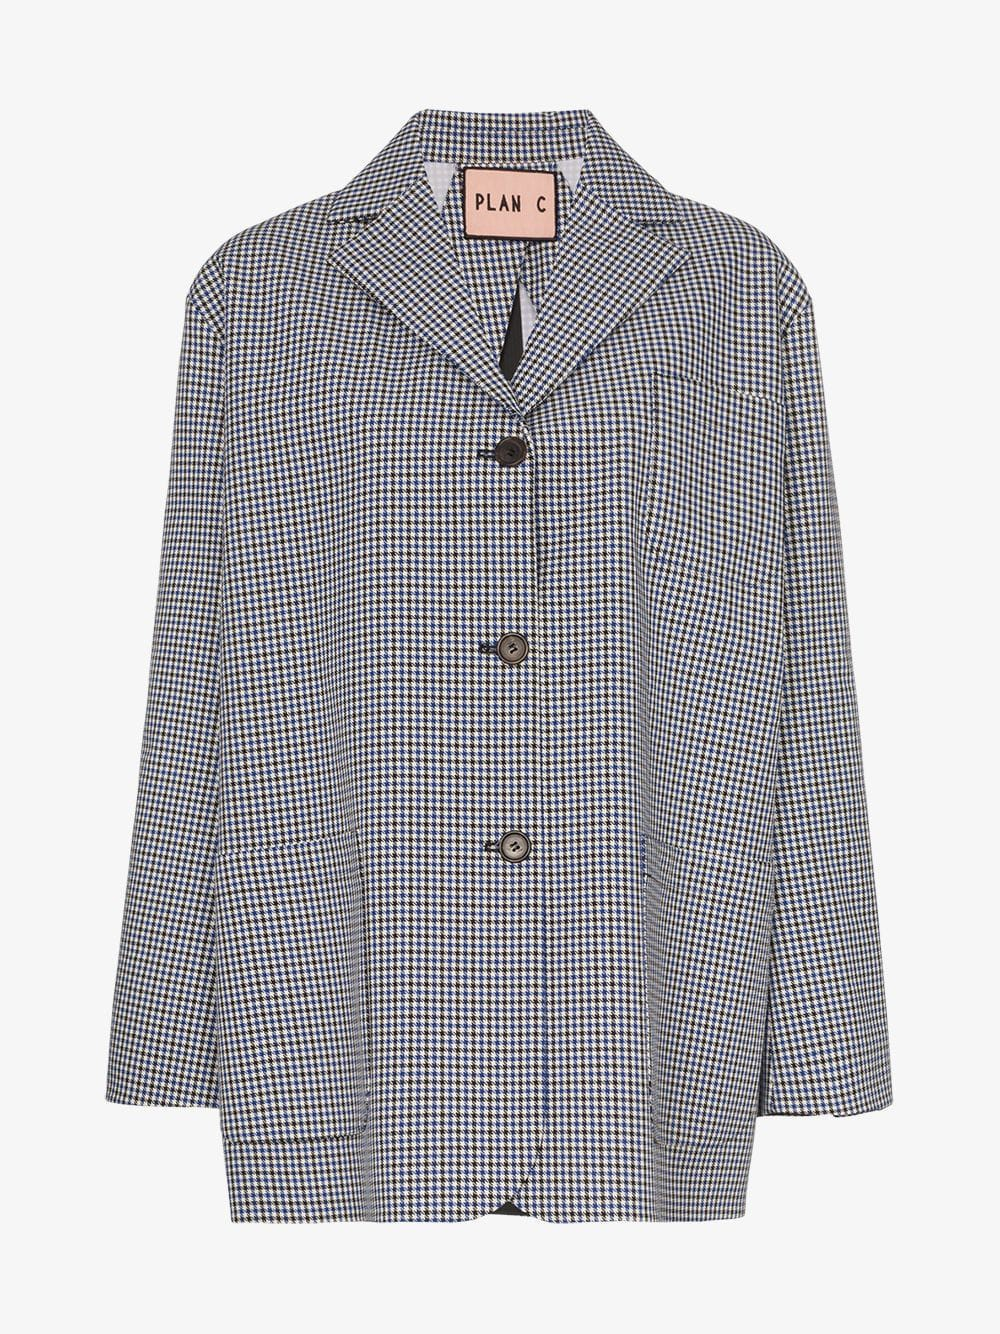 Plan C Checked Blazer in blue